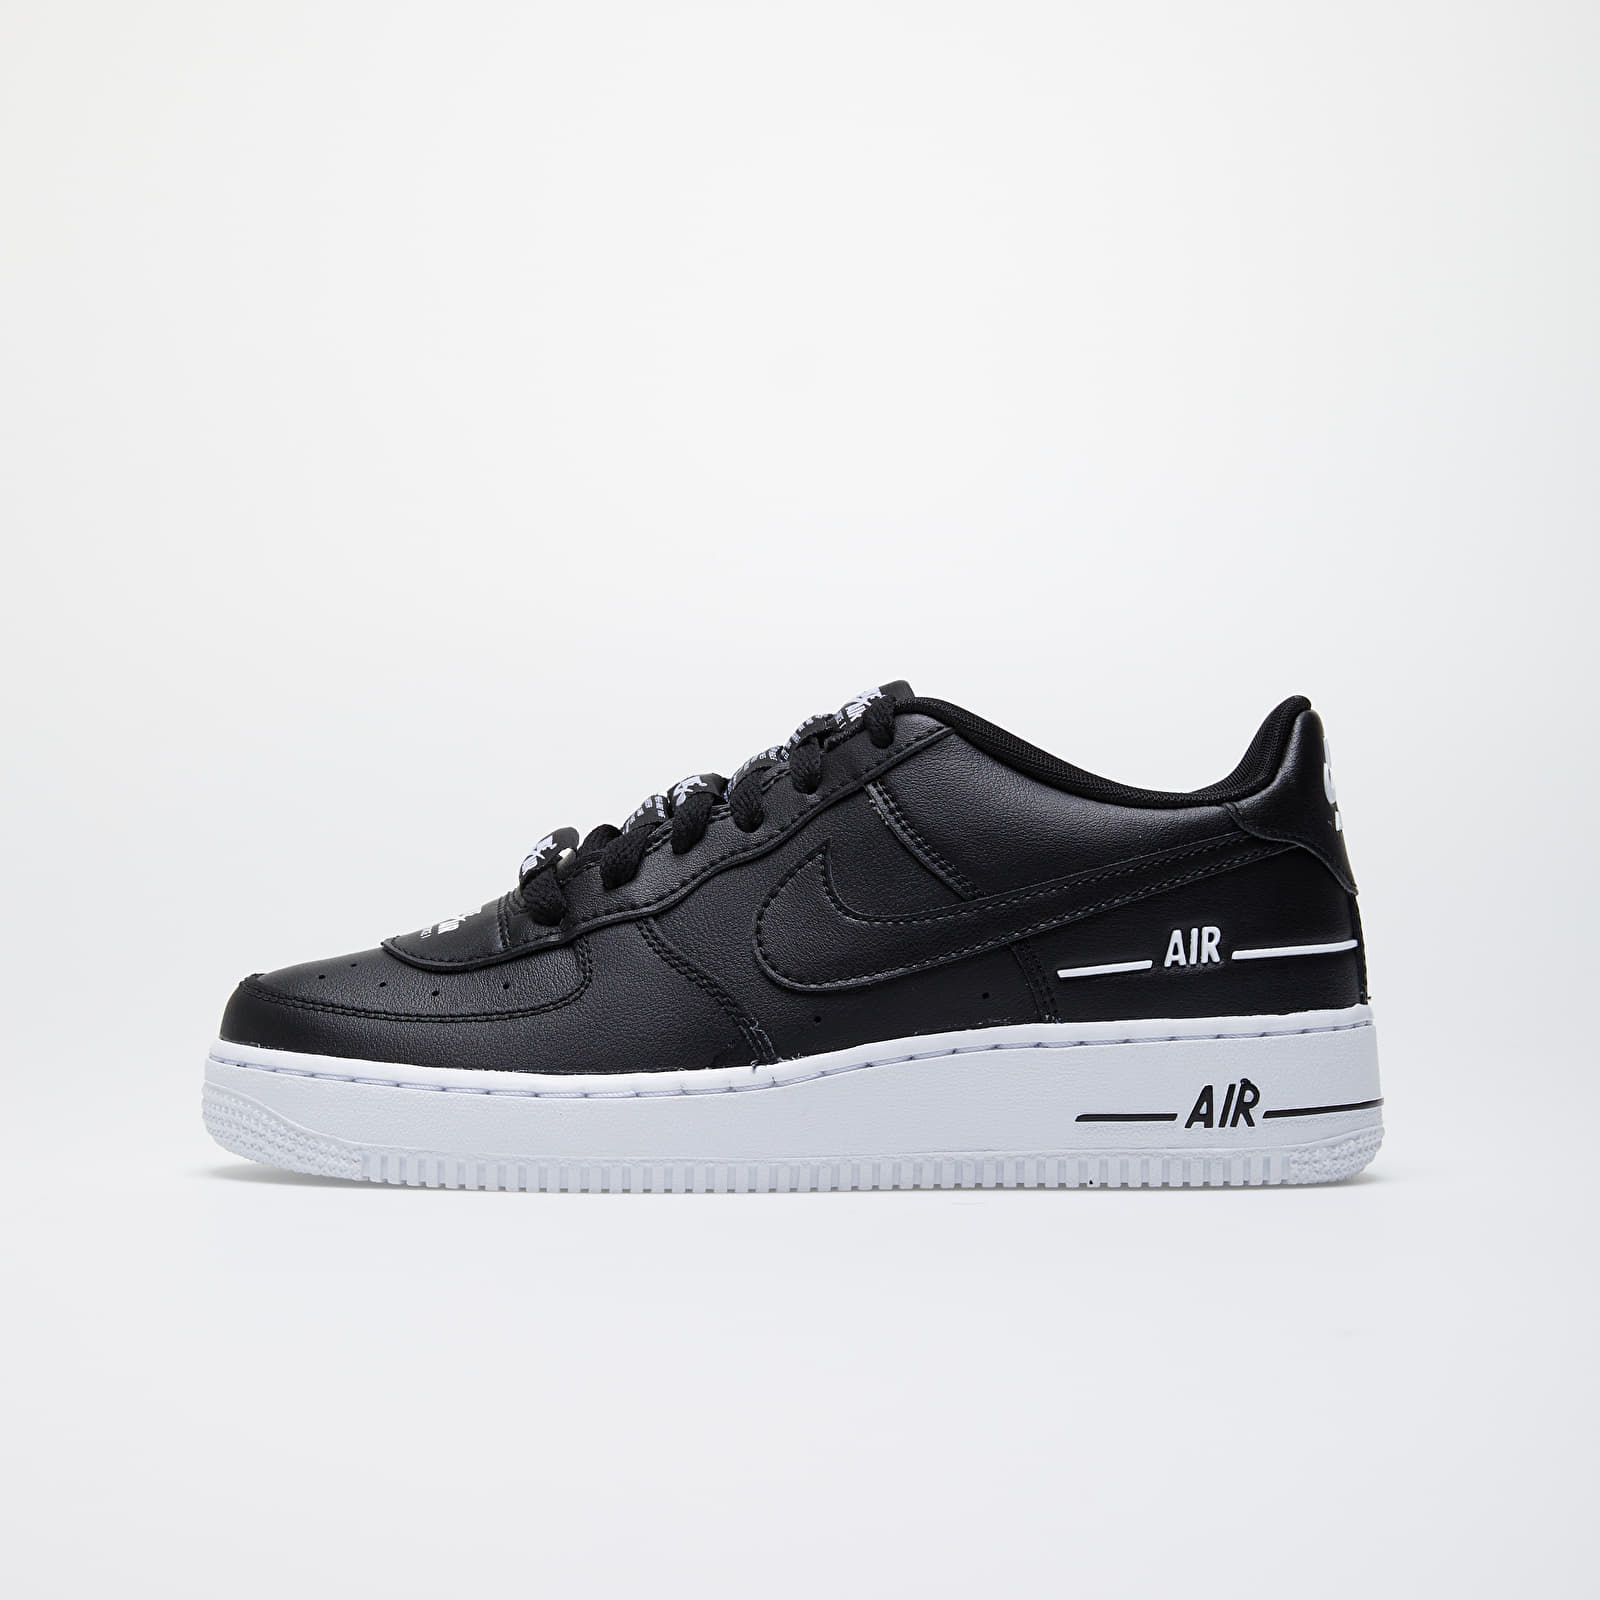 Zapatillas de niño Nike Air Force 1 LV8 3 (GS) Black/ Black-White